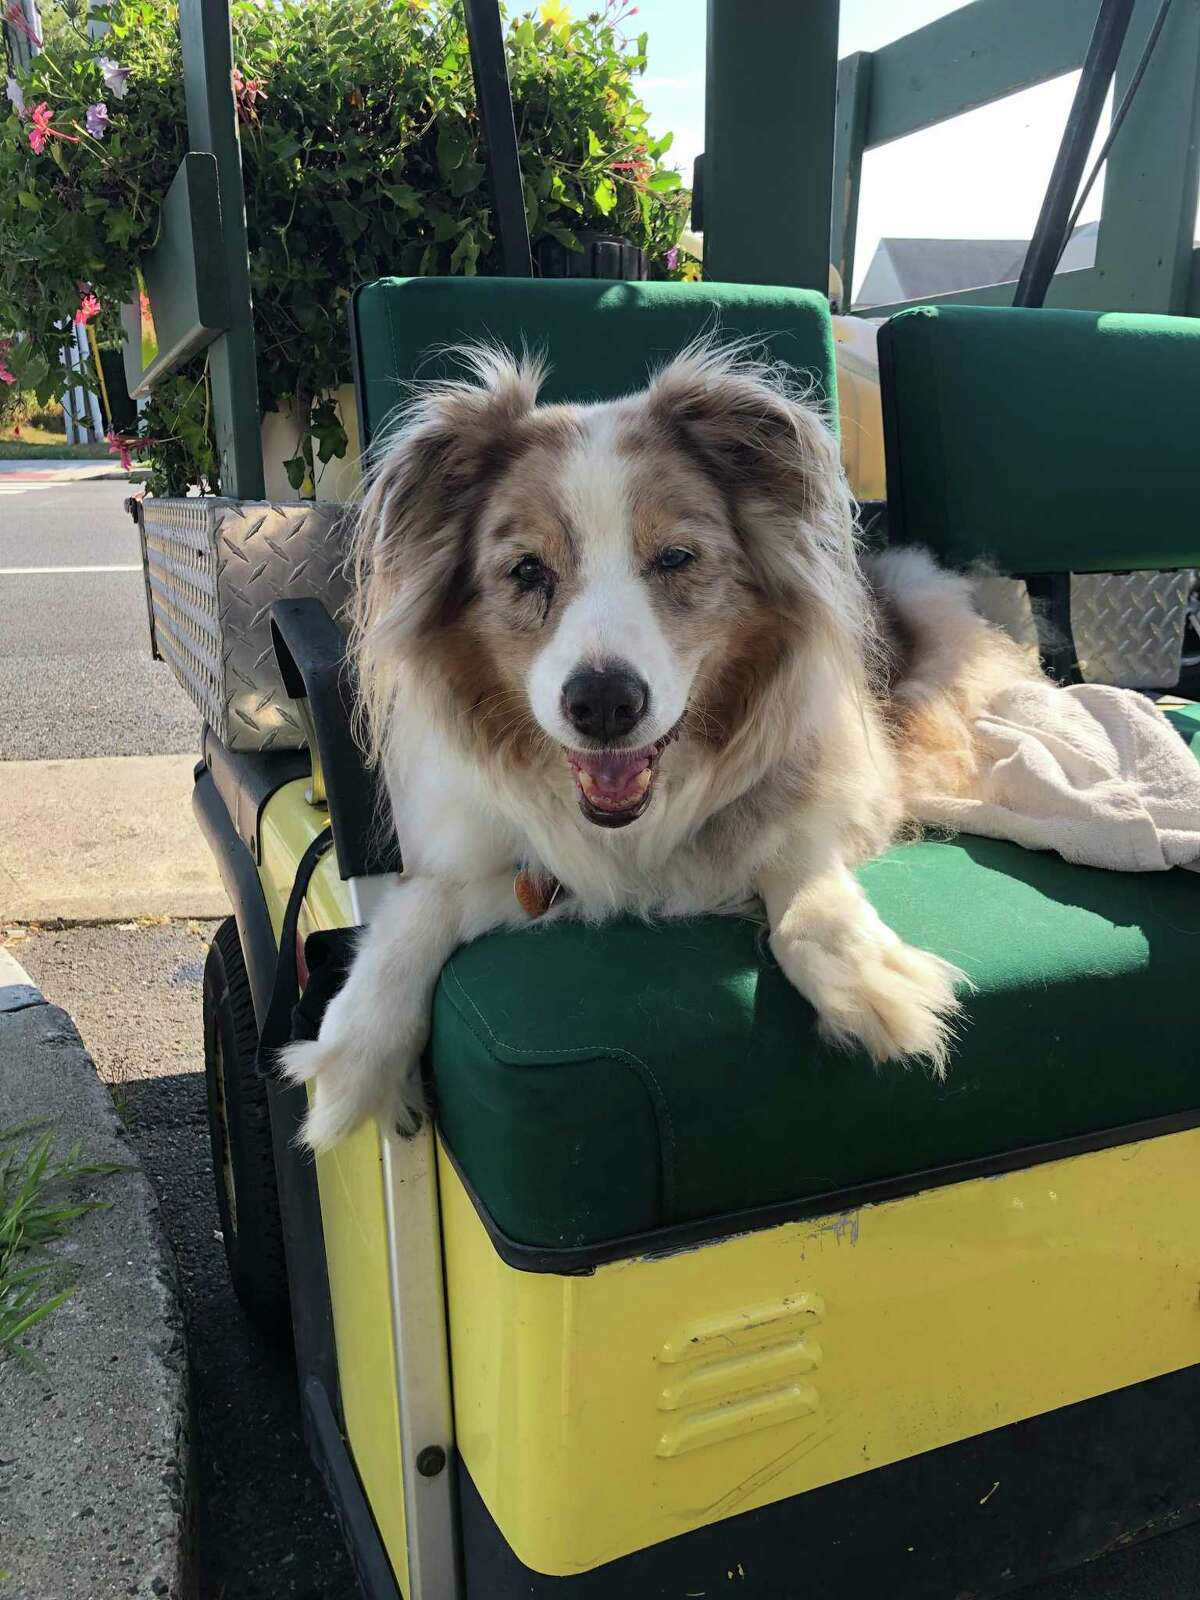 Biscuit, as always, waiting patiently. Moore said that her family has a puppy, a male Australian Shepherd named Bauer, with